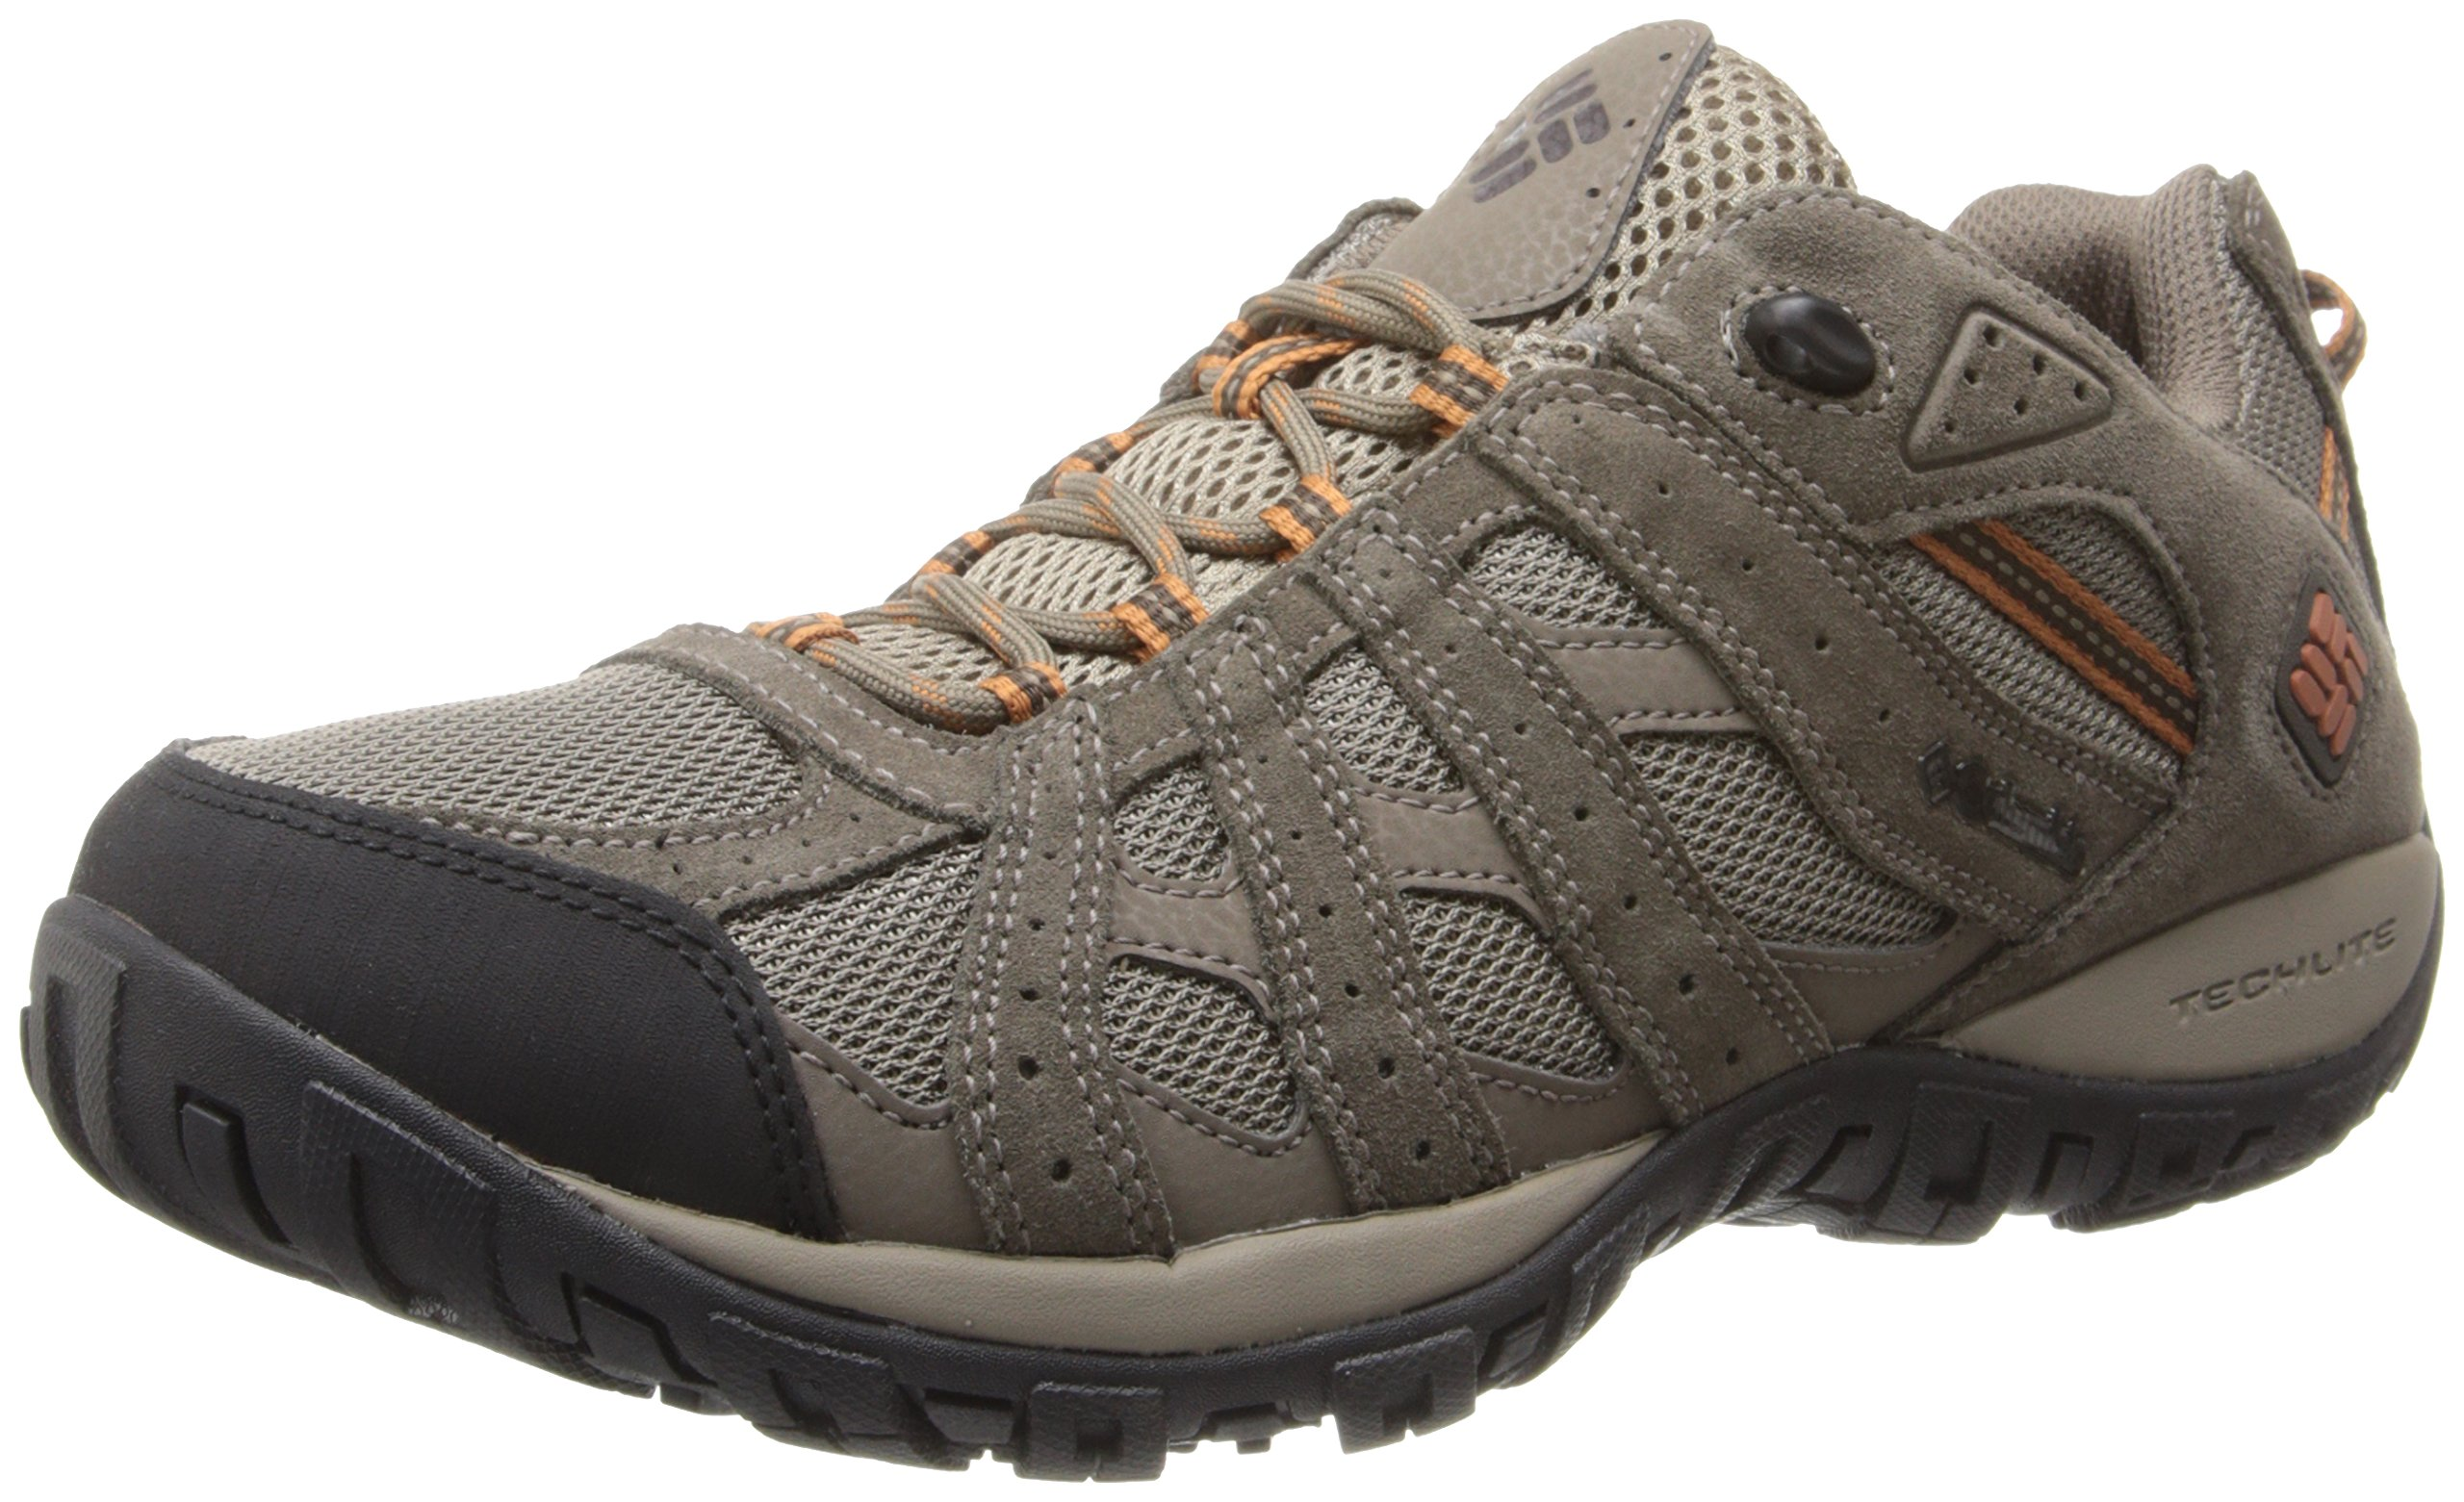 Columbia Men's Redmond Waterproof Hiking Shoe Pebble, Dark Ginger 8 D US